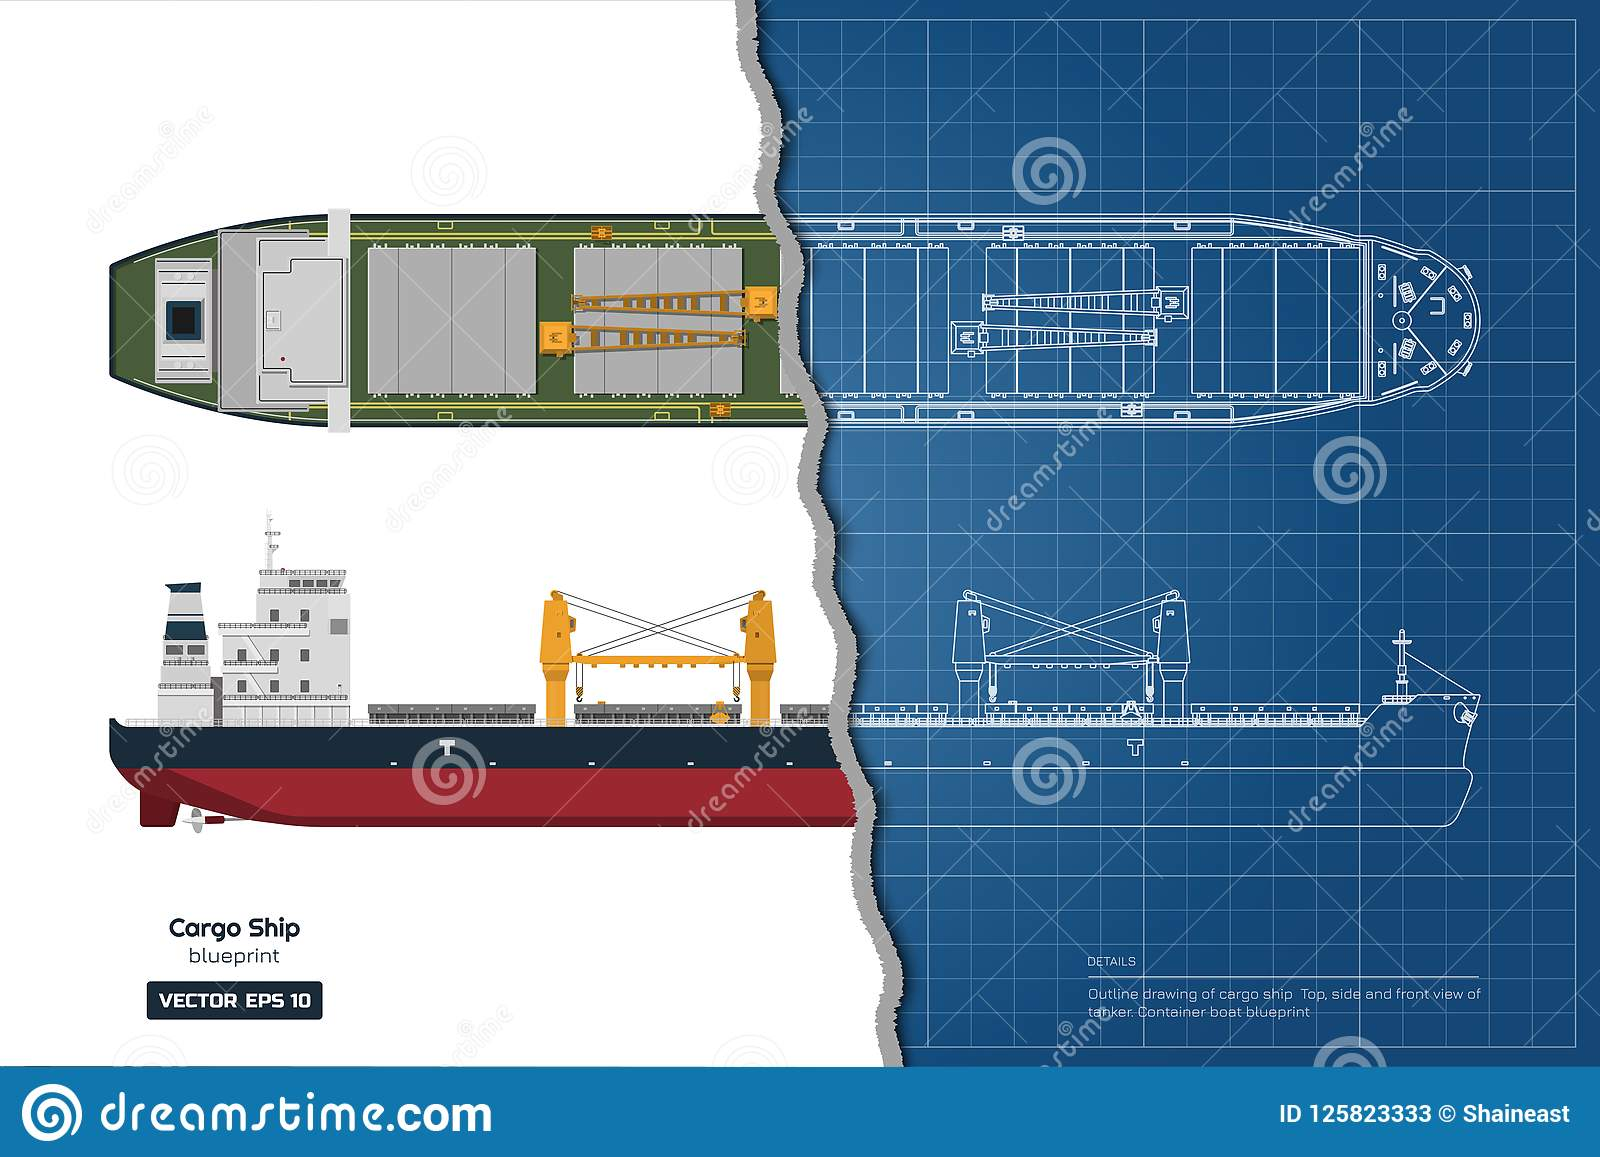 hight resolution of blueprint of cargo ship on white background top side and front view of tanker